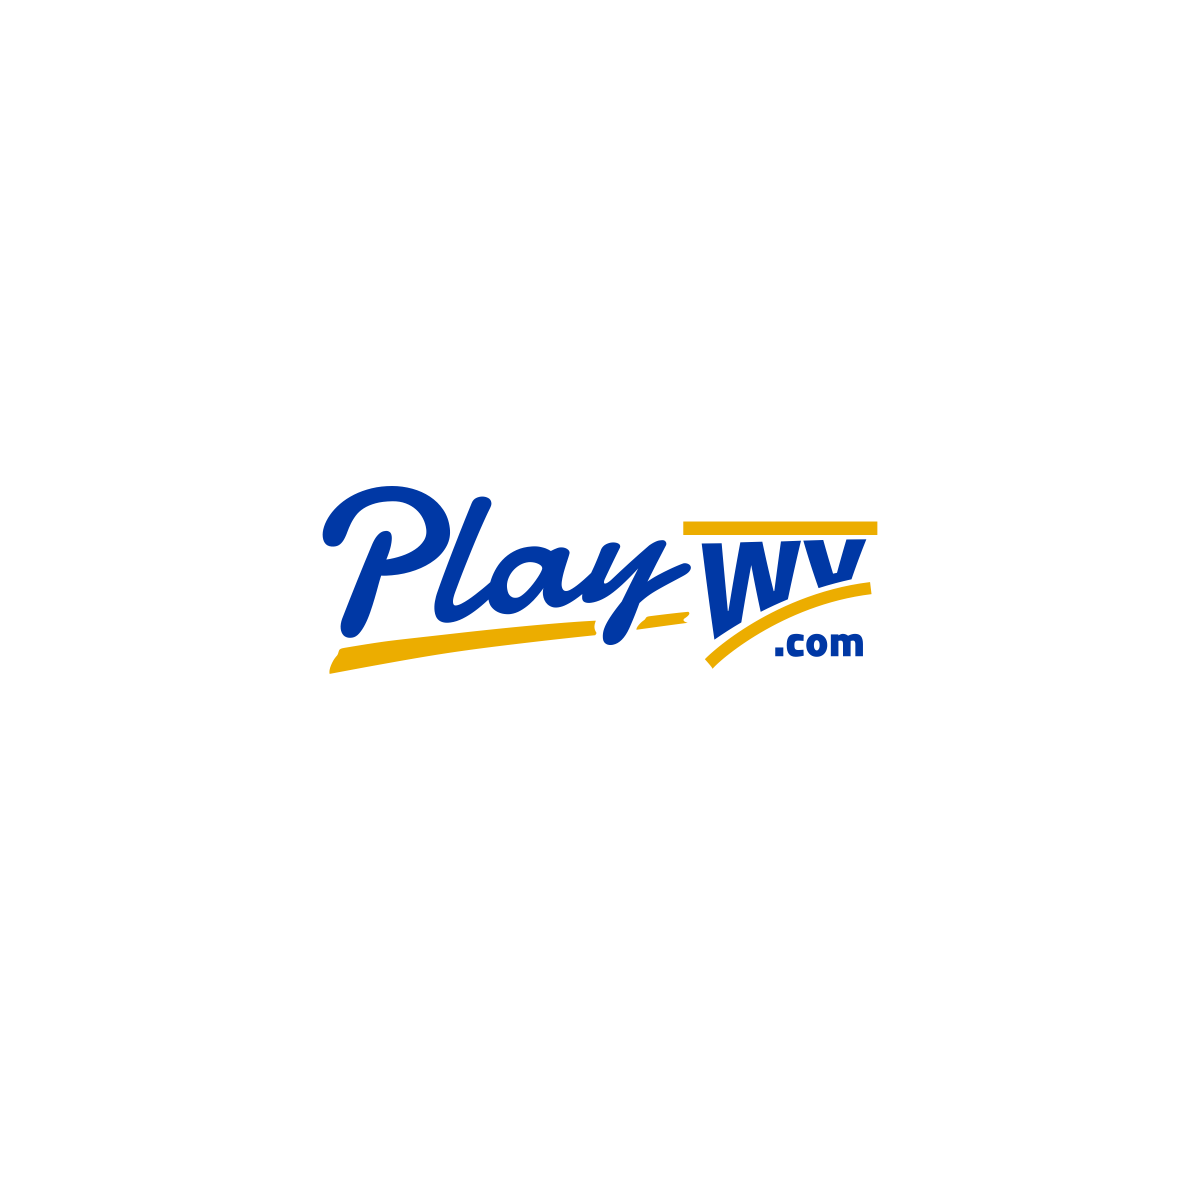 Play WV logo design